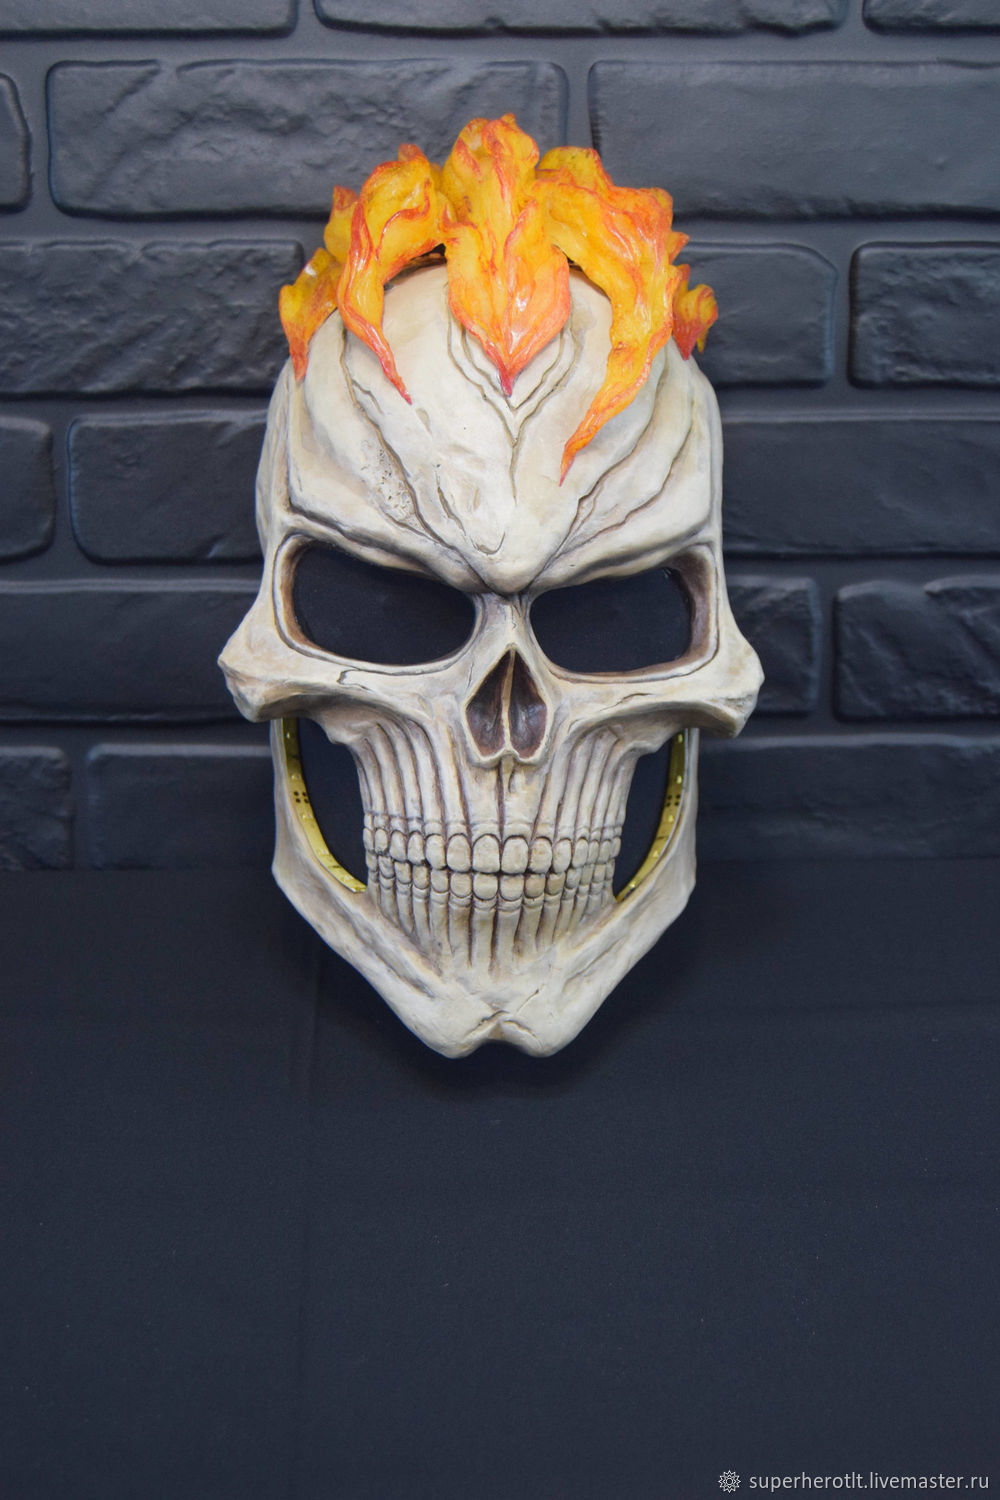 Mask Of Ghost Rider From The Tv Series Agents Of Shield